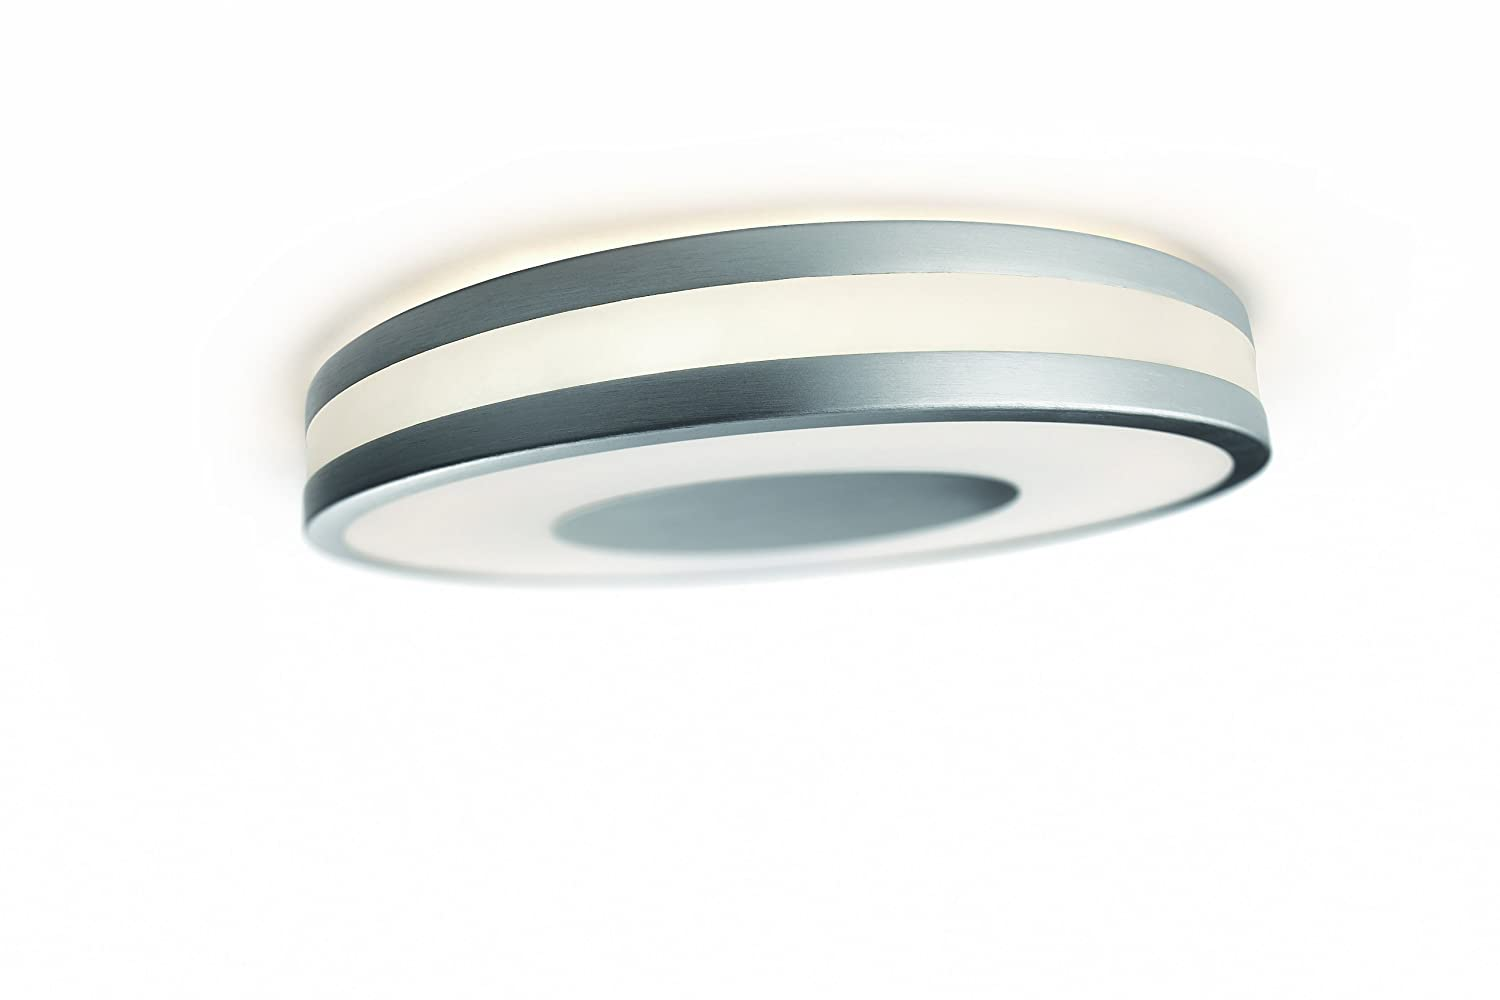 Philips 326104848 ecomoods energy efficient wall or ceiling light philips 326104848 ecomoods energy efficient wall or ceiling light with 2 colored diffusers aluminum decorative ceiling medallions amazon aloadofball